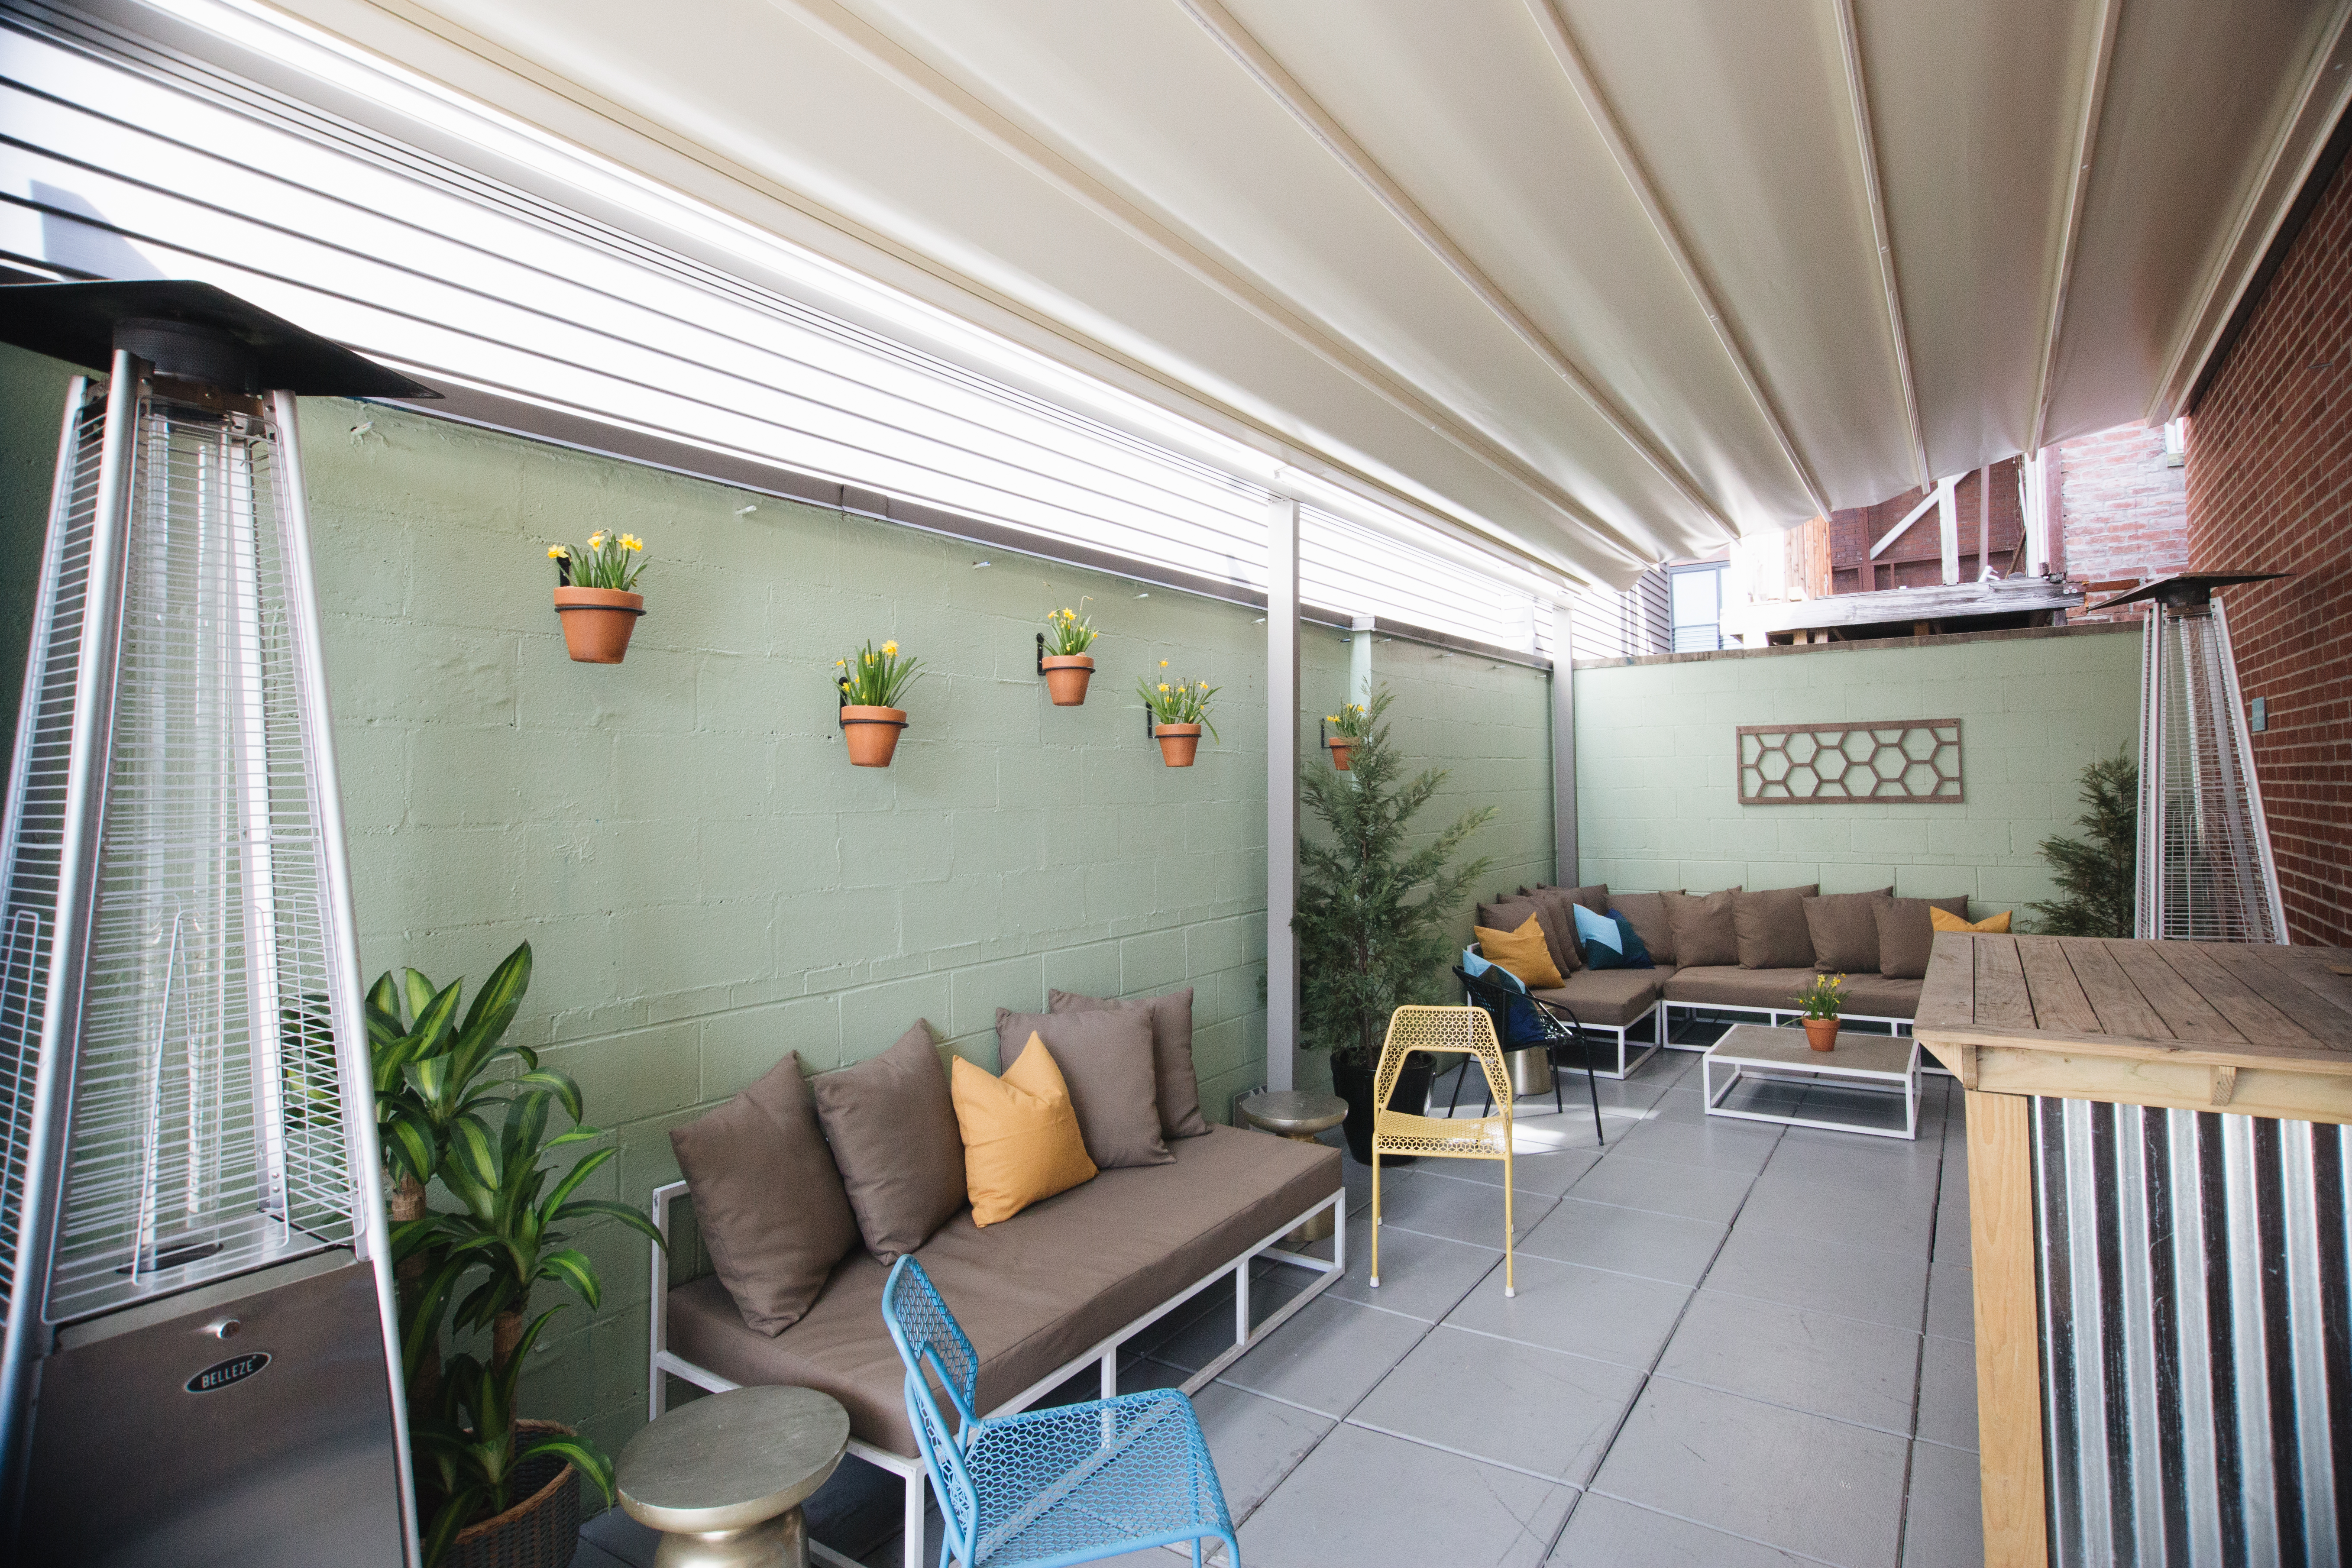 Colada Shop Adds a Retractable Rain Cover to Keep Rooftop Parties Going